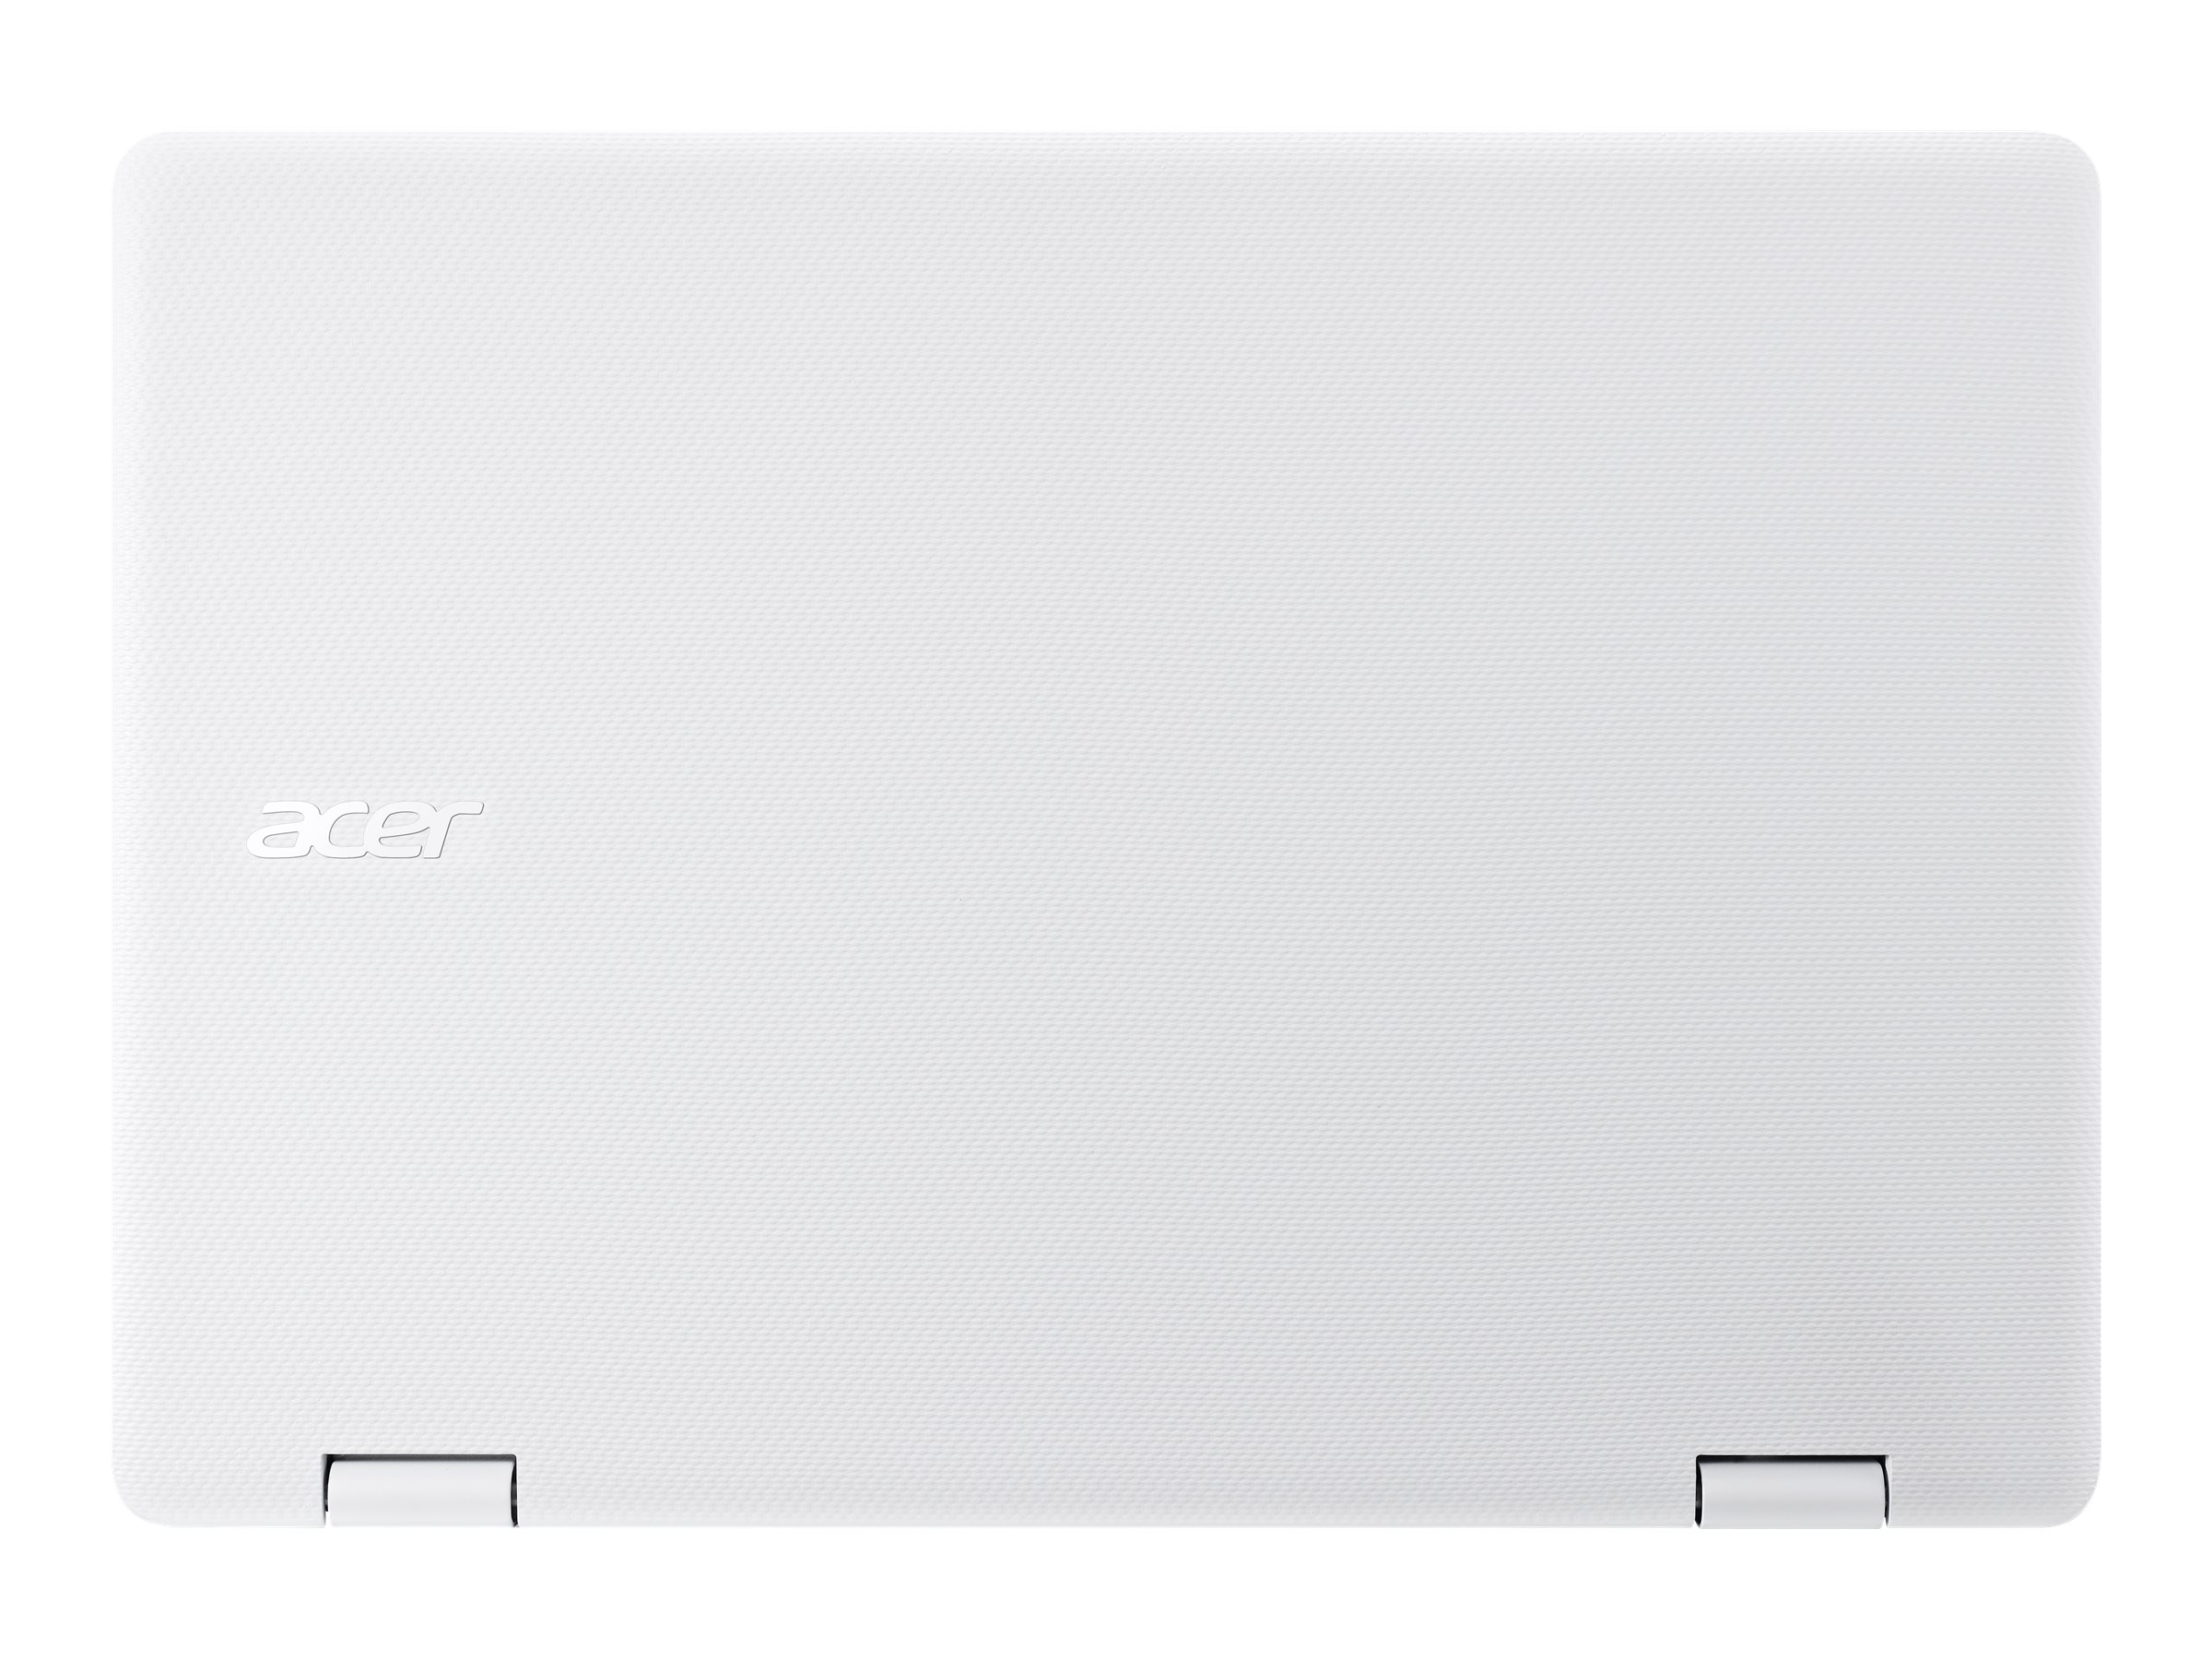 Acer NX.G83AA.005 Image 5